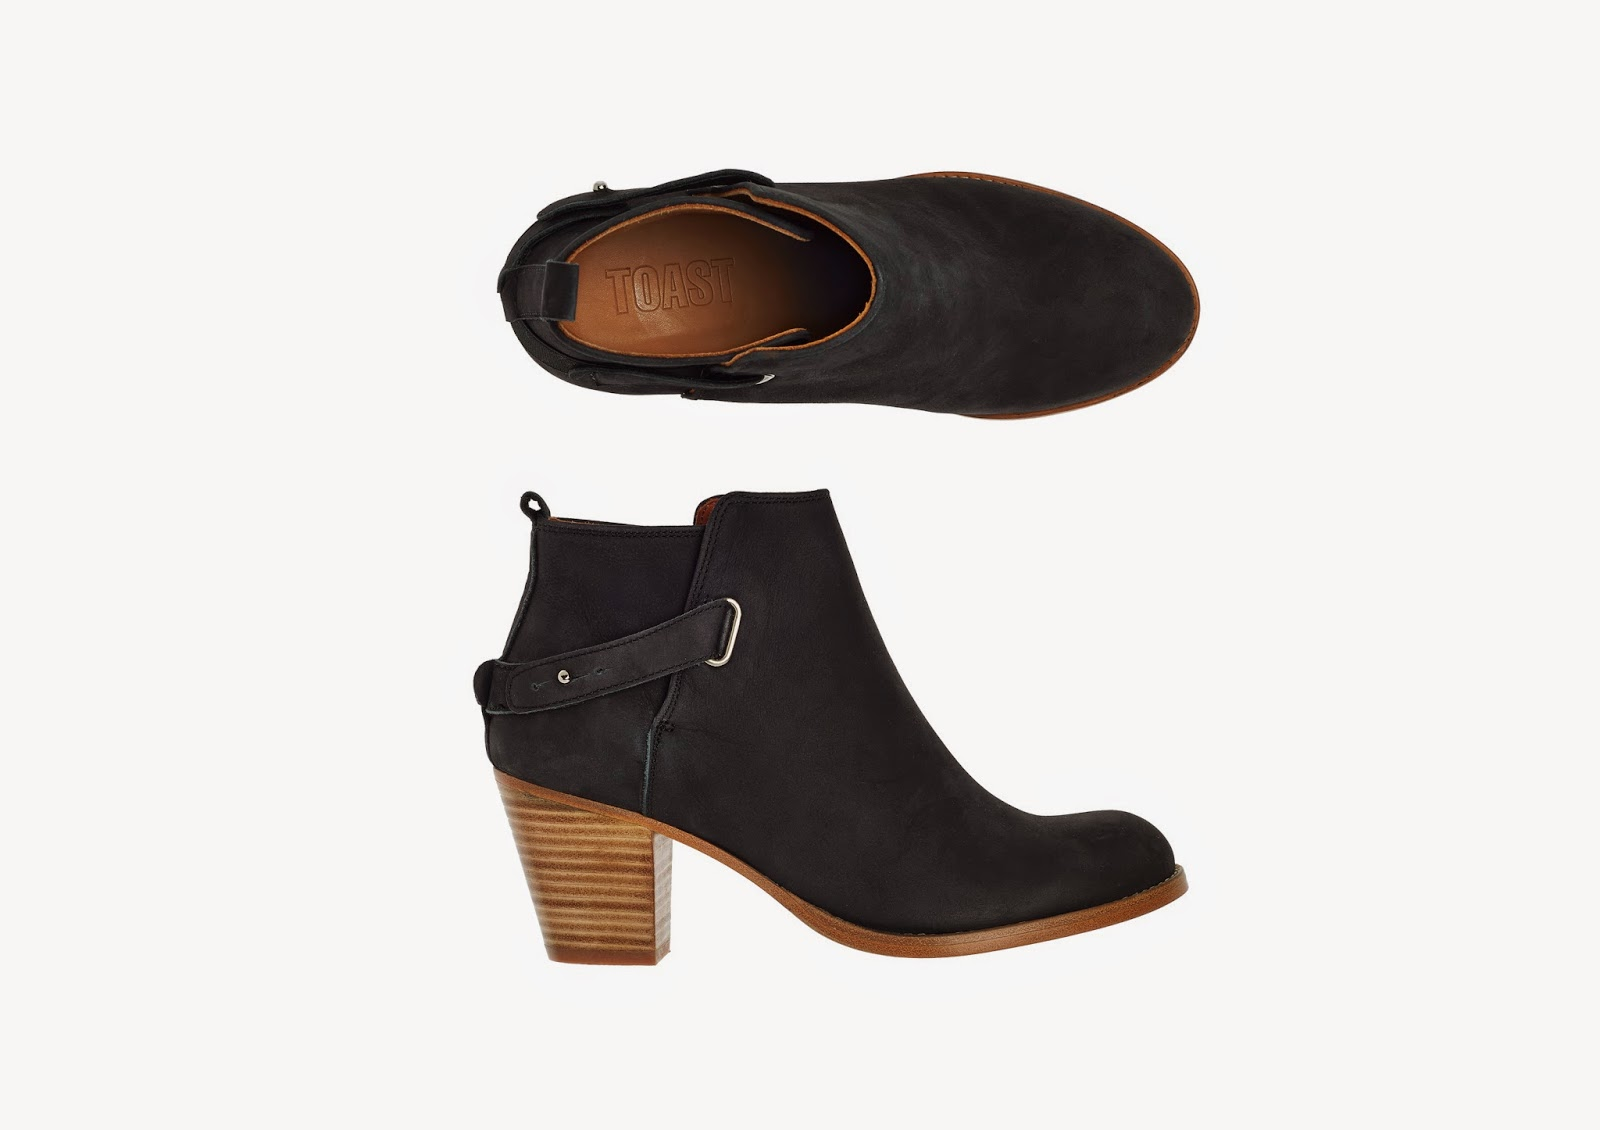 The perfect ankle boot from Toast